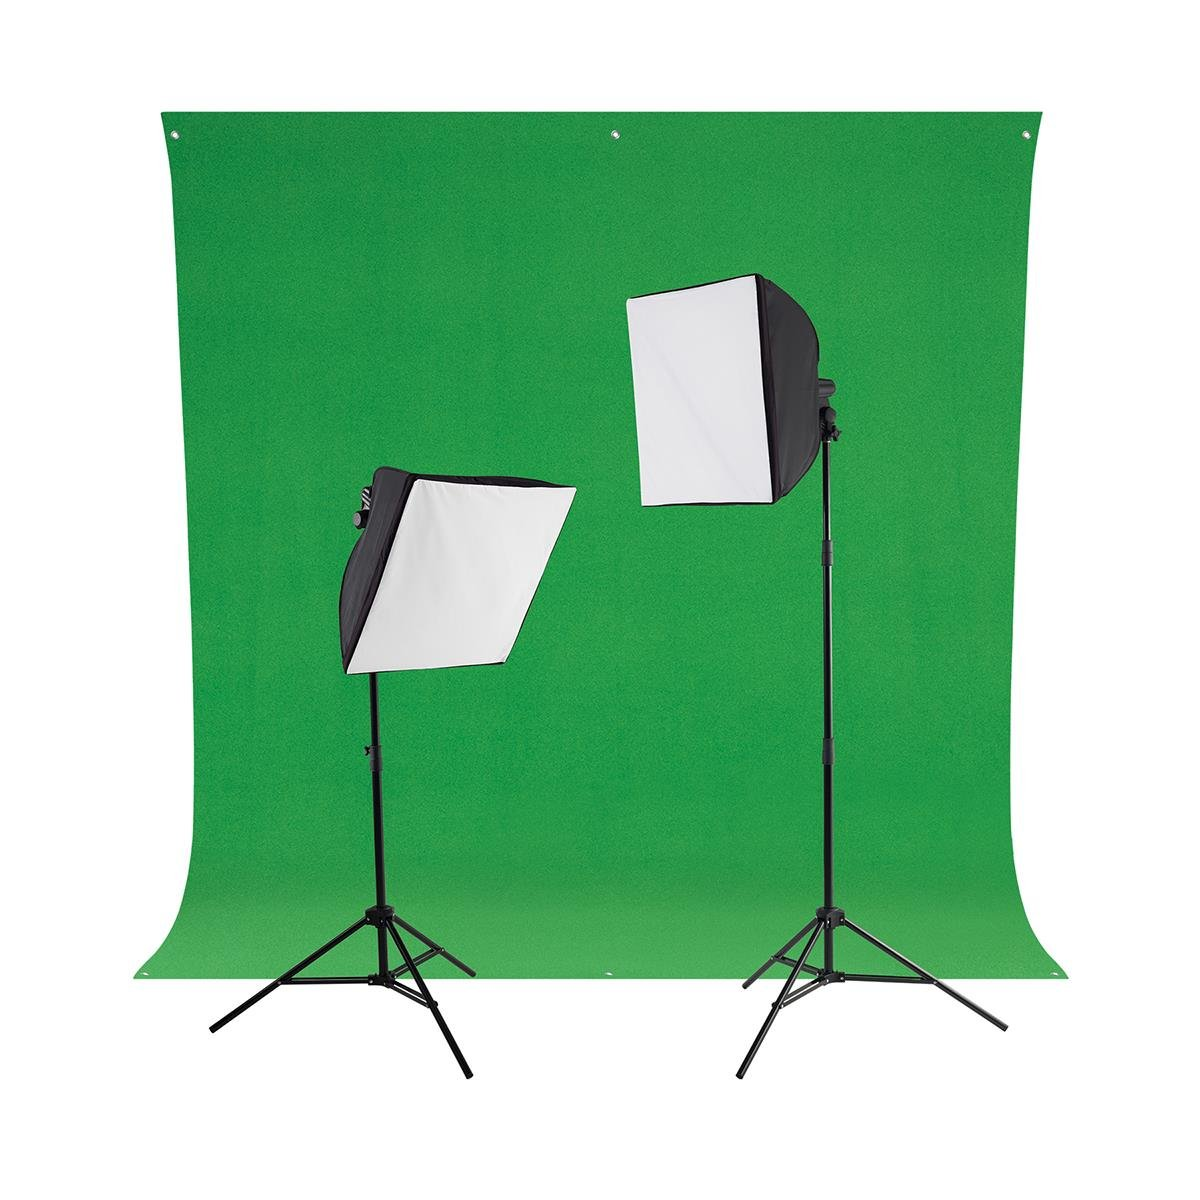 Westcott Green Screen Photo Lighting Kit, Includes 2X uLite Constant Light (500W), 2X uLite Collapsible Softbox, 2X Daylight LED Bulb with Tungsten Cover, Wrinkle-Resistant Backdrop Chroma Key